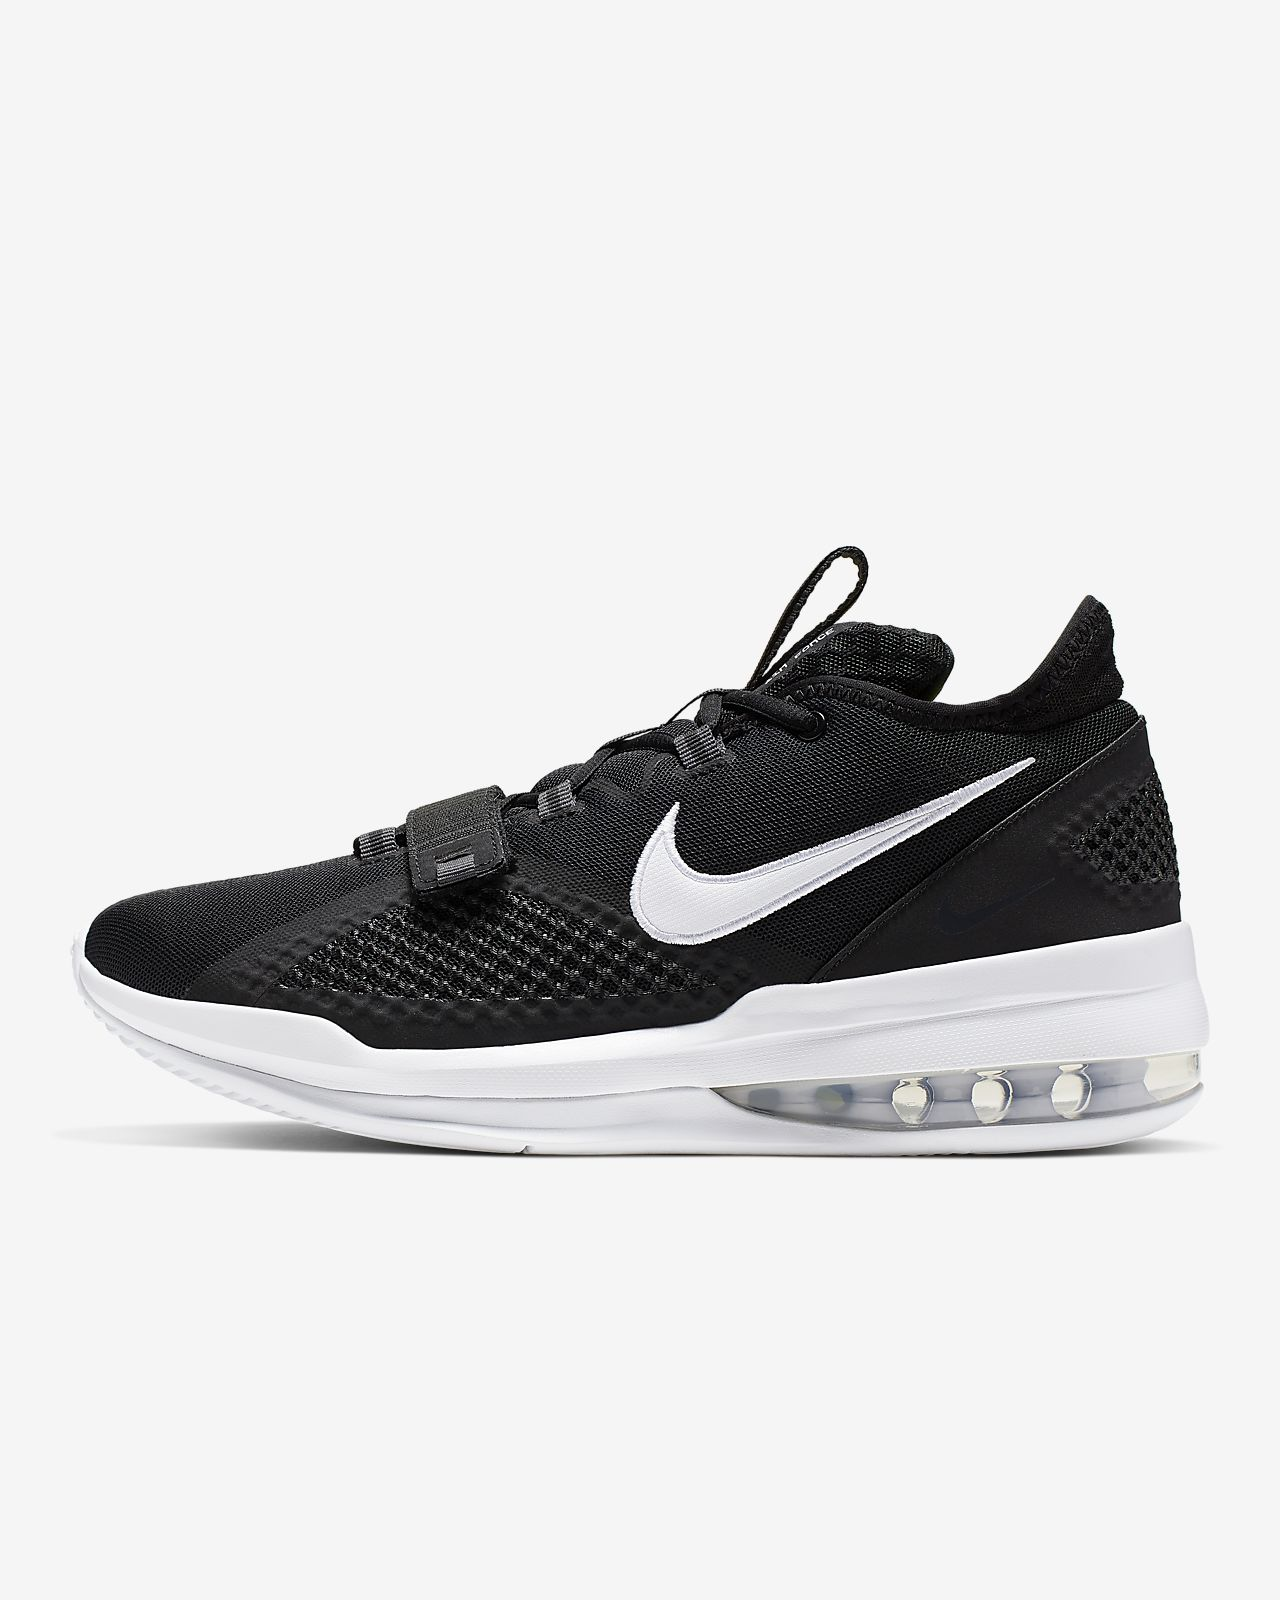 regard détaillé 24f2f b12da Nike Air Force Max Low Basketball Shoe